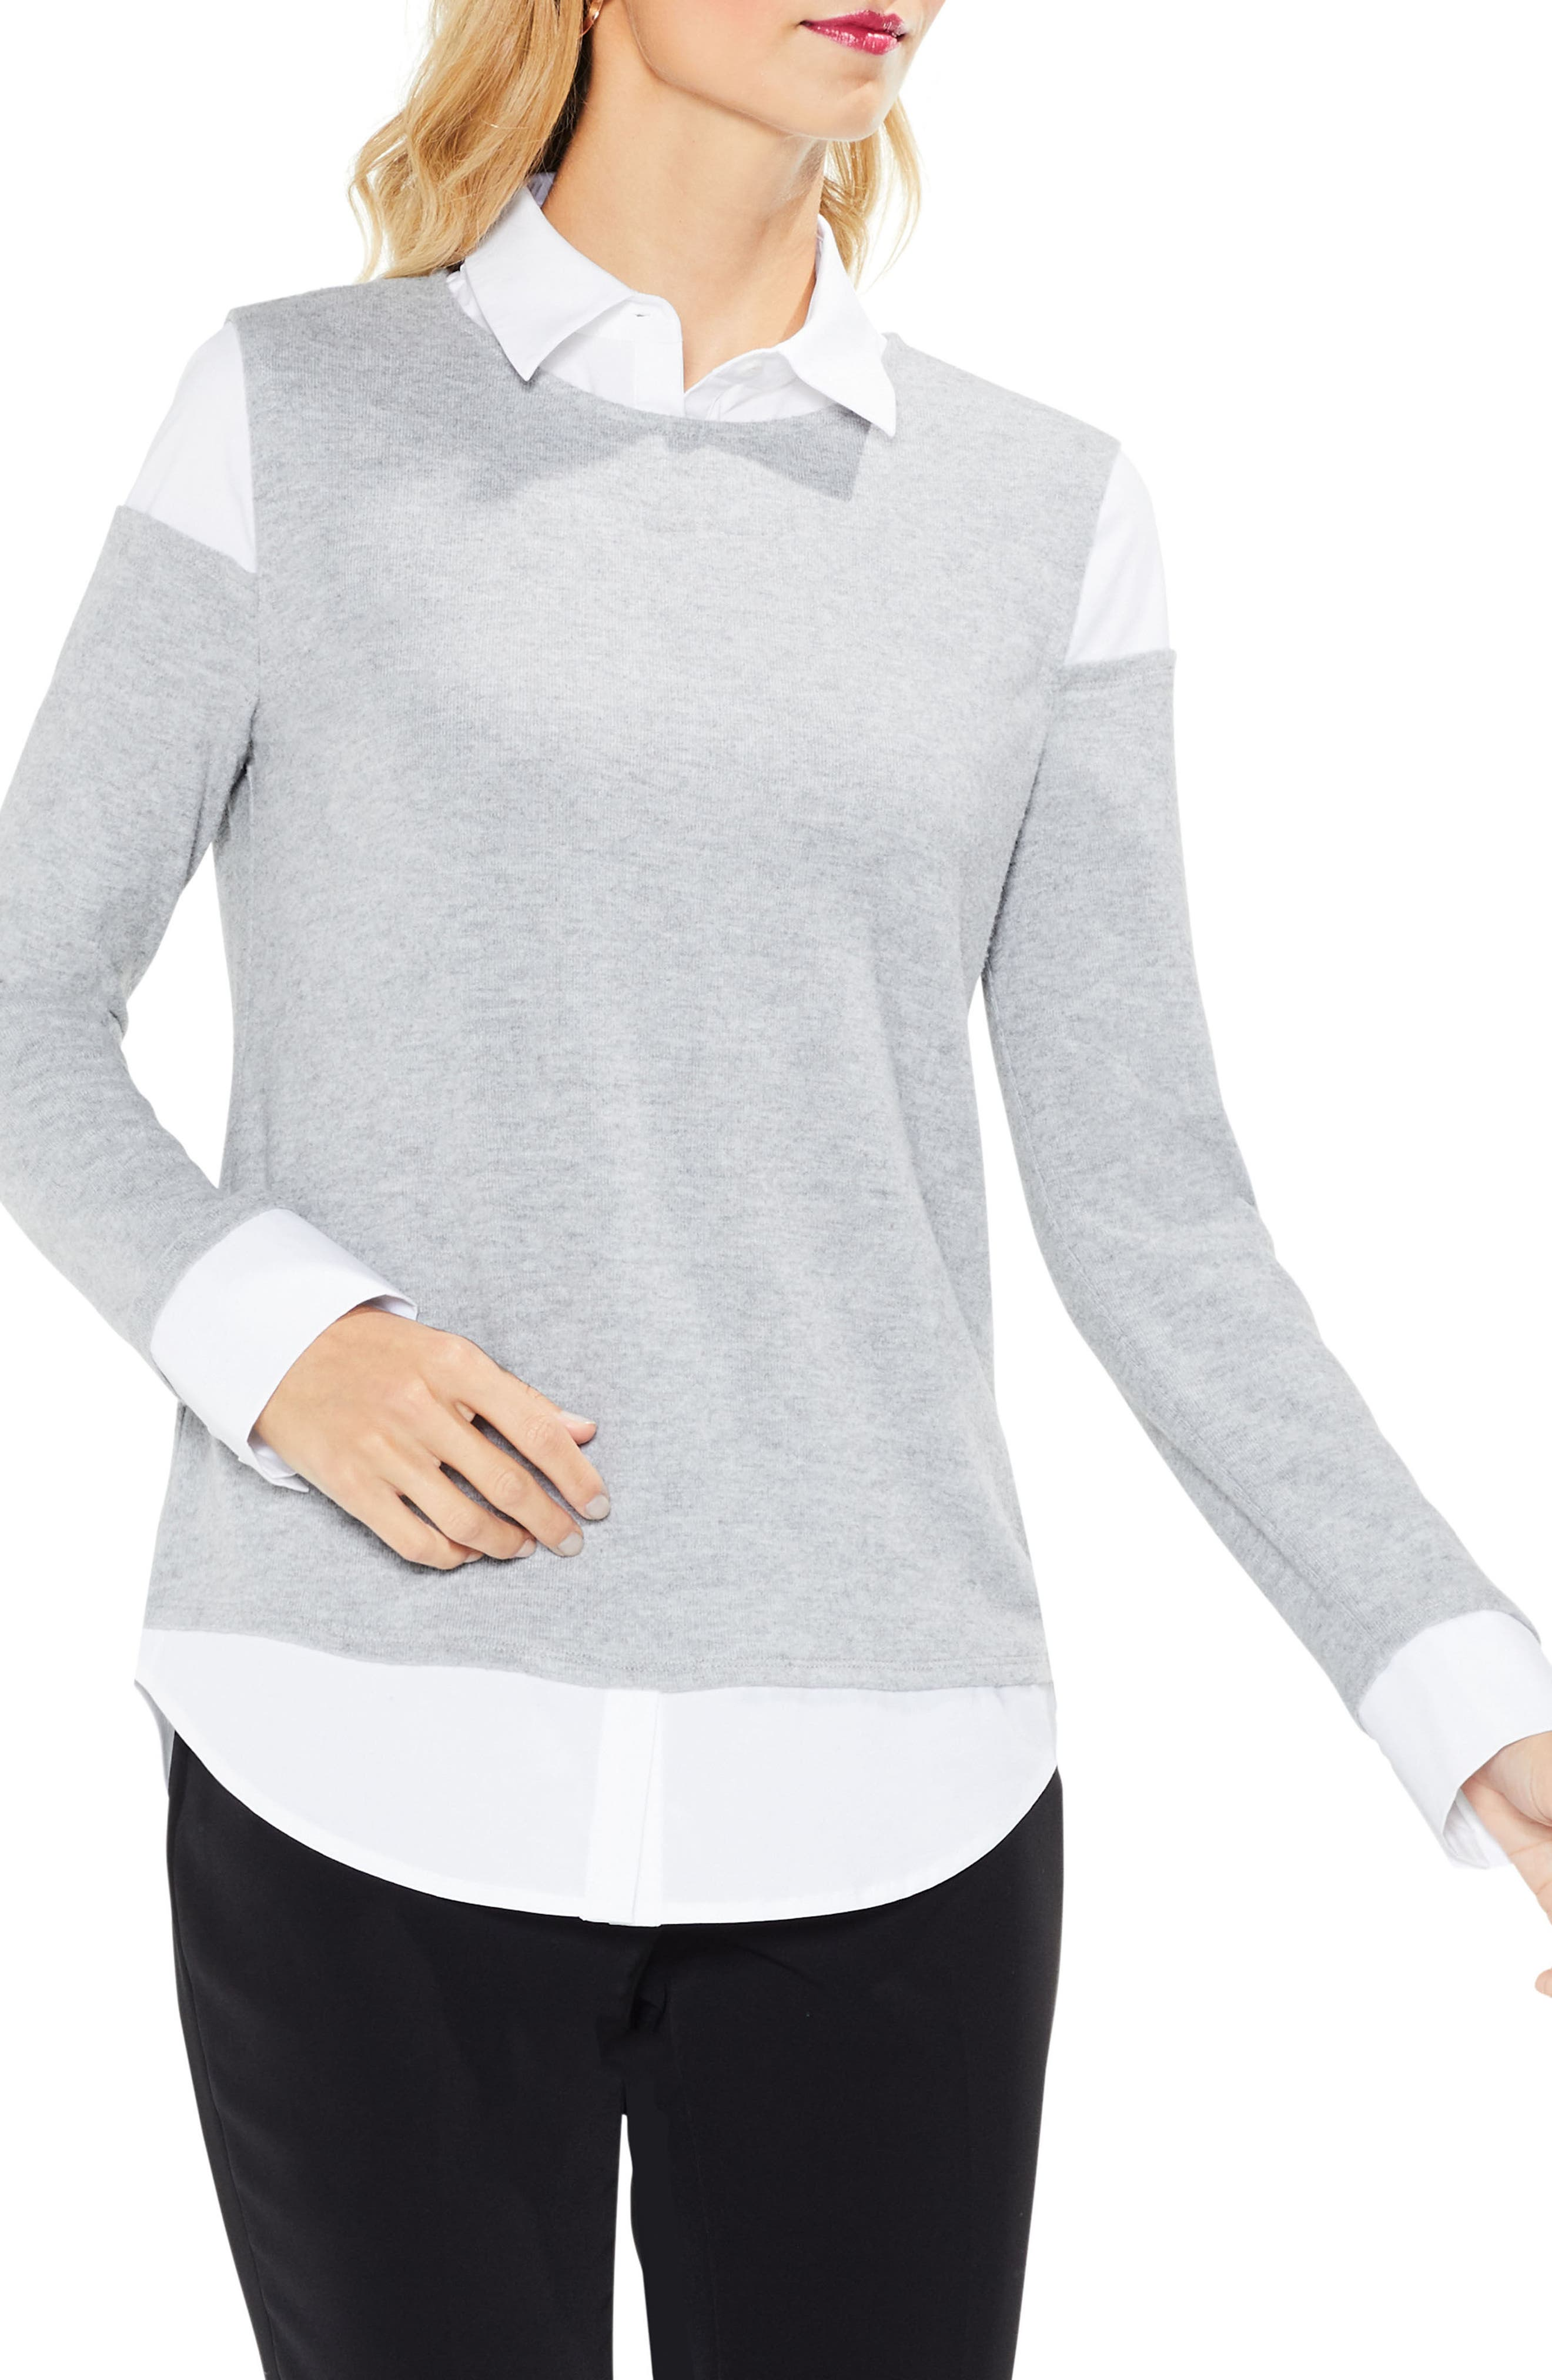 Alternate Image 1 Selected - Vince Camuto Mix Media Brushed Jersey Top